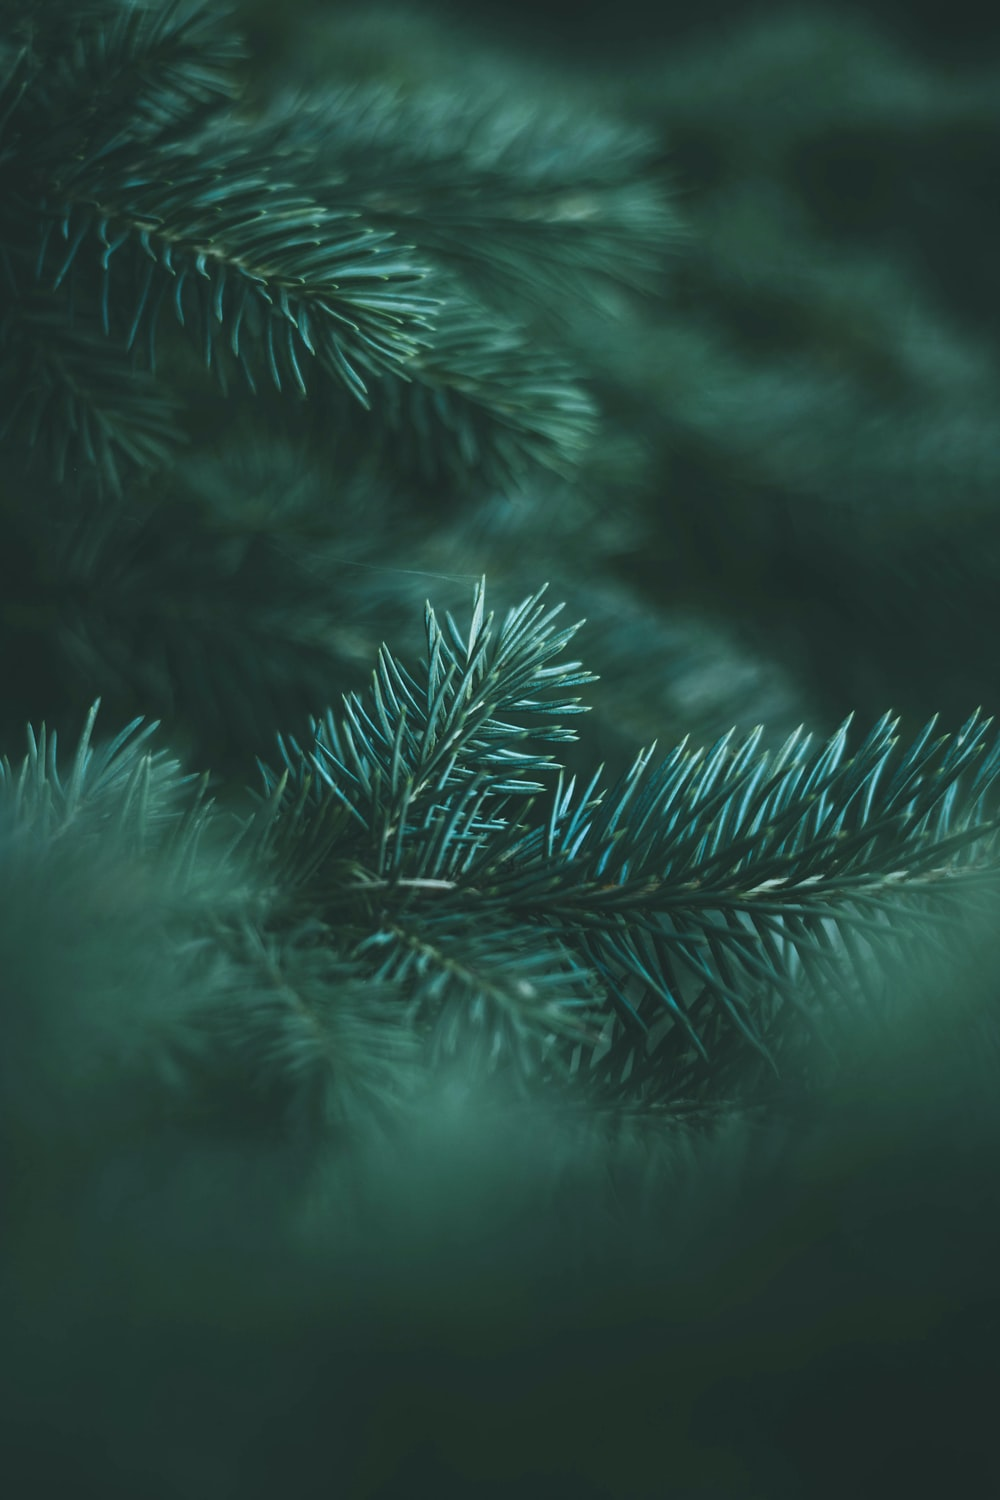 green pine tree leaves in close up photography